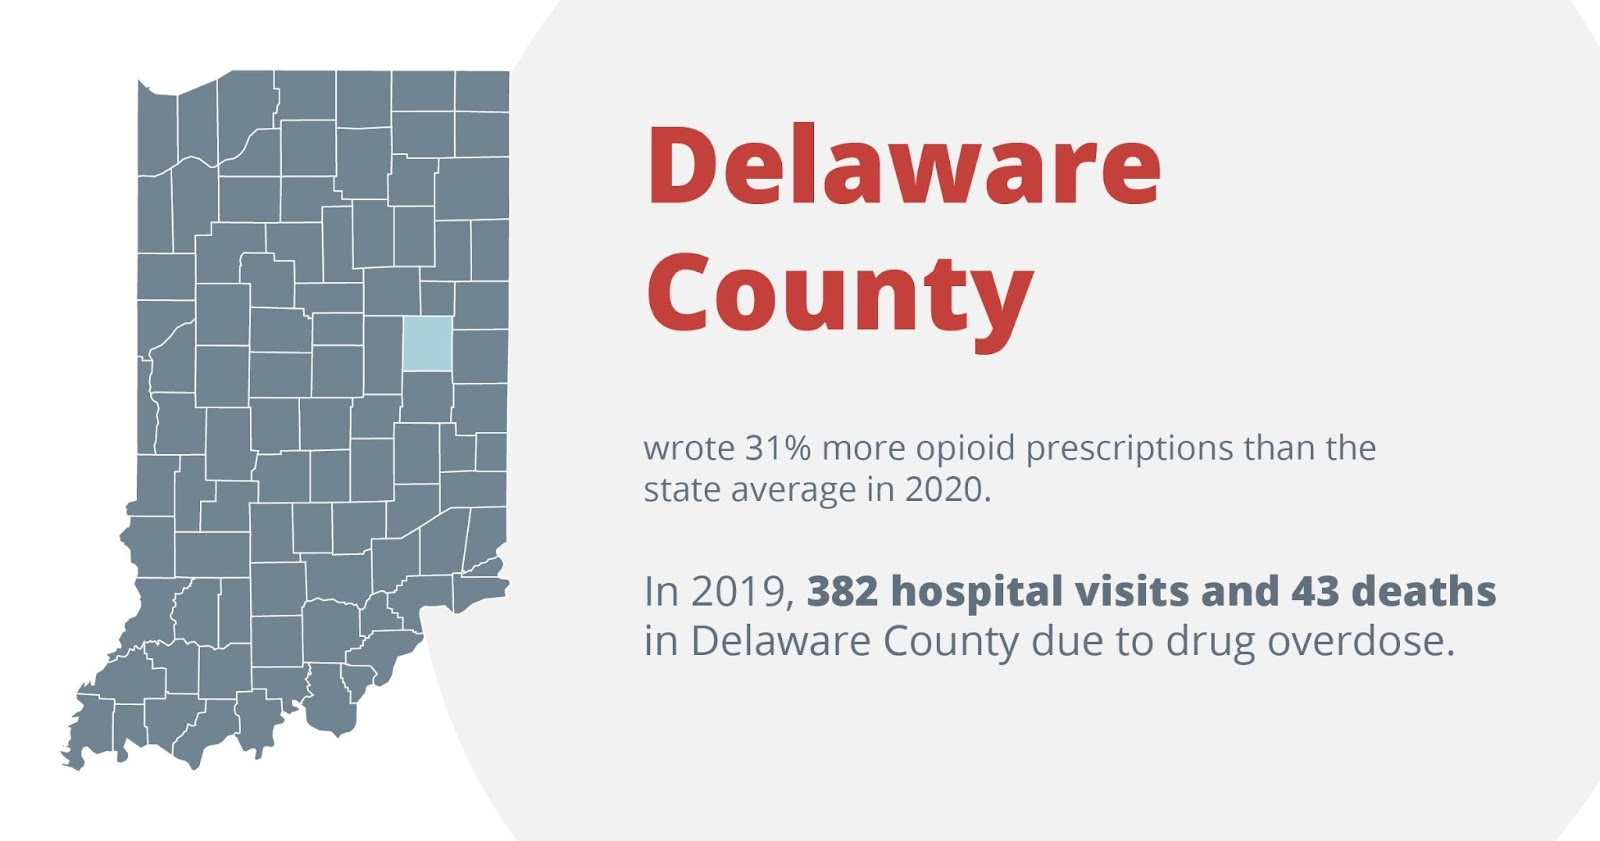 Delaware county wrote 31% more opioid prescriptions than the state average of 2020. In 2019, 382 hospital visits and 43 deaths in delaware county due to drug overdose